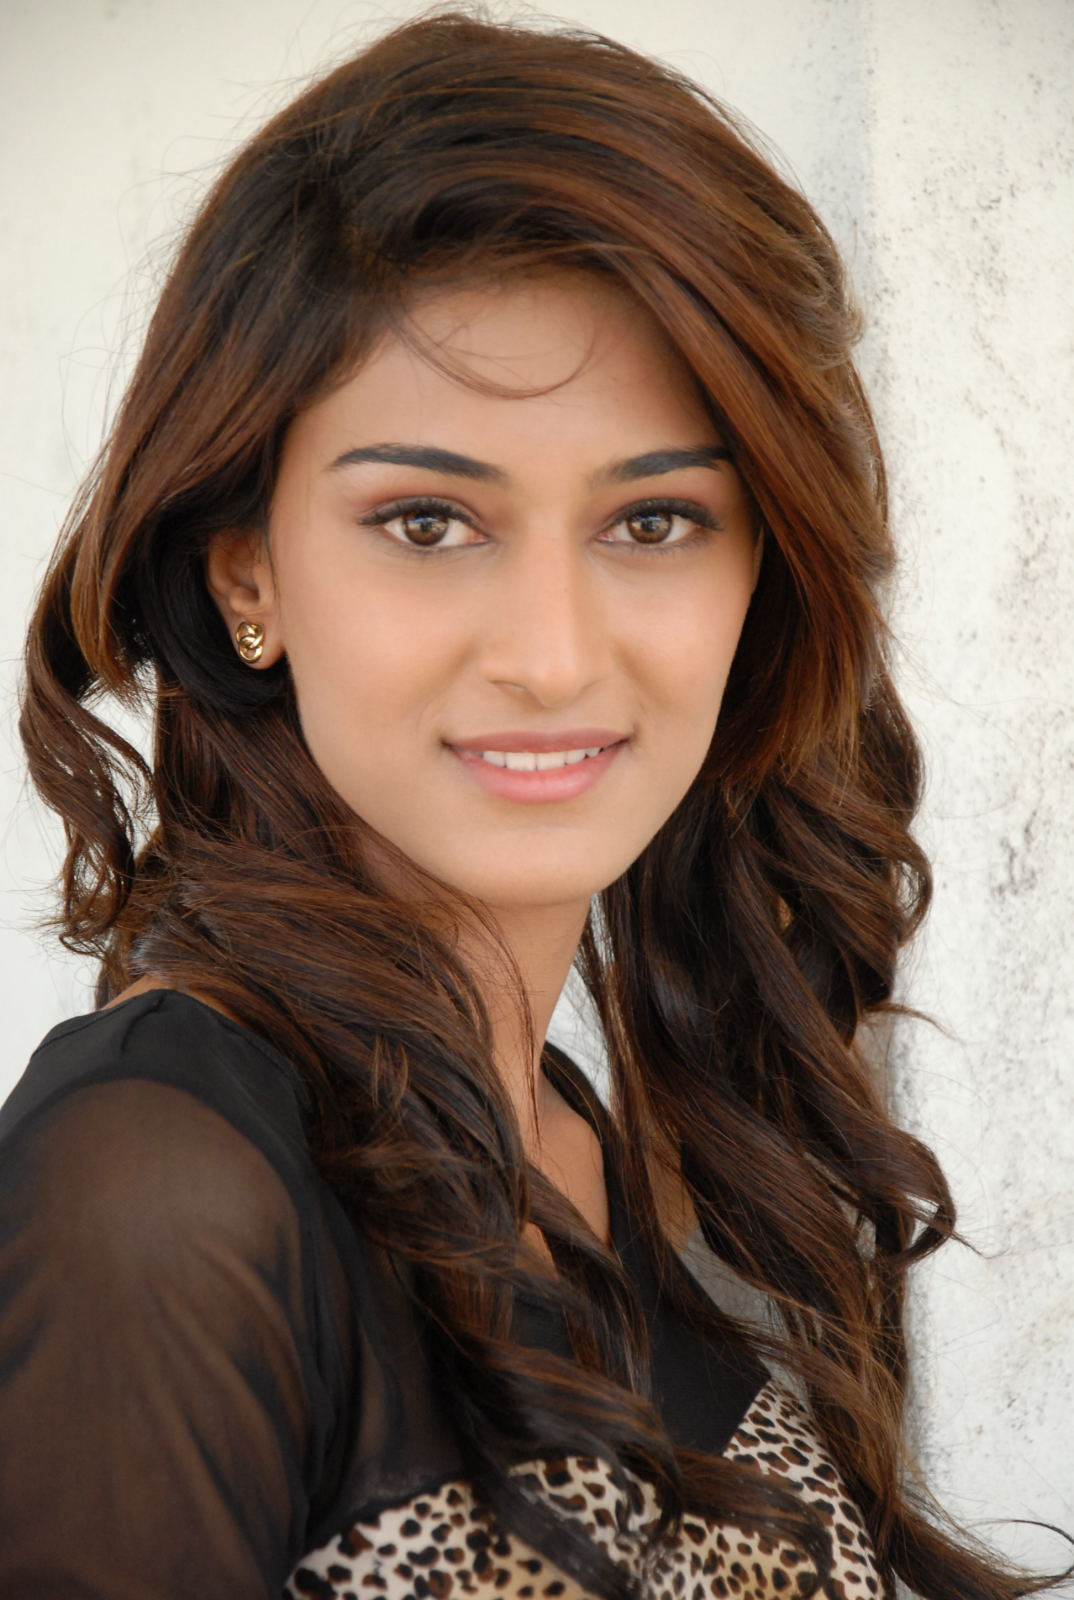 Most Popular Celebrities Erica Fernandes HD Wallpapers - Celebrities HD PNG